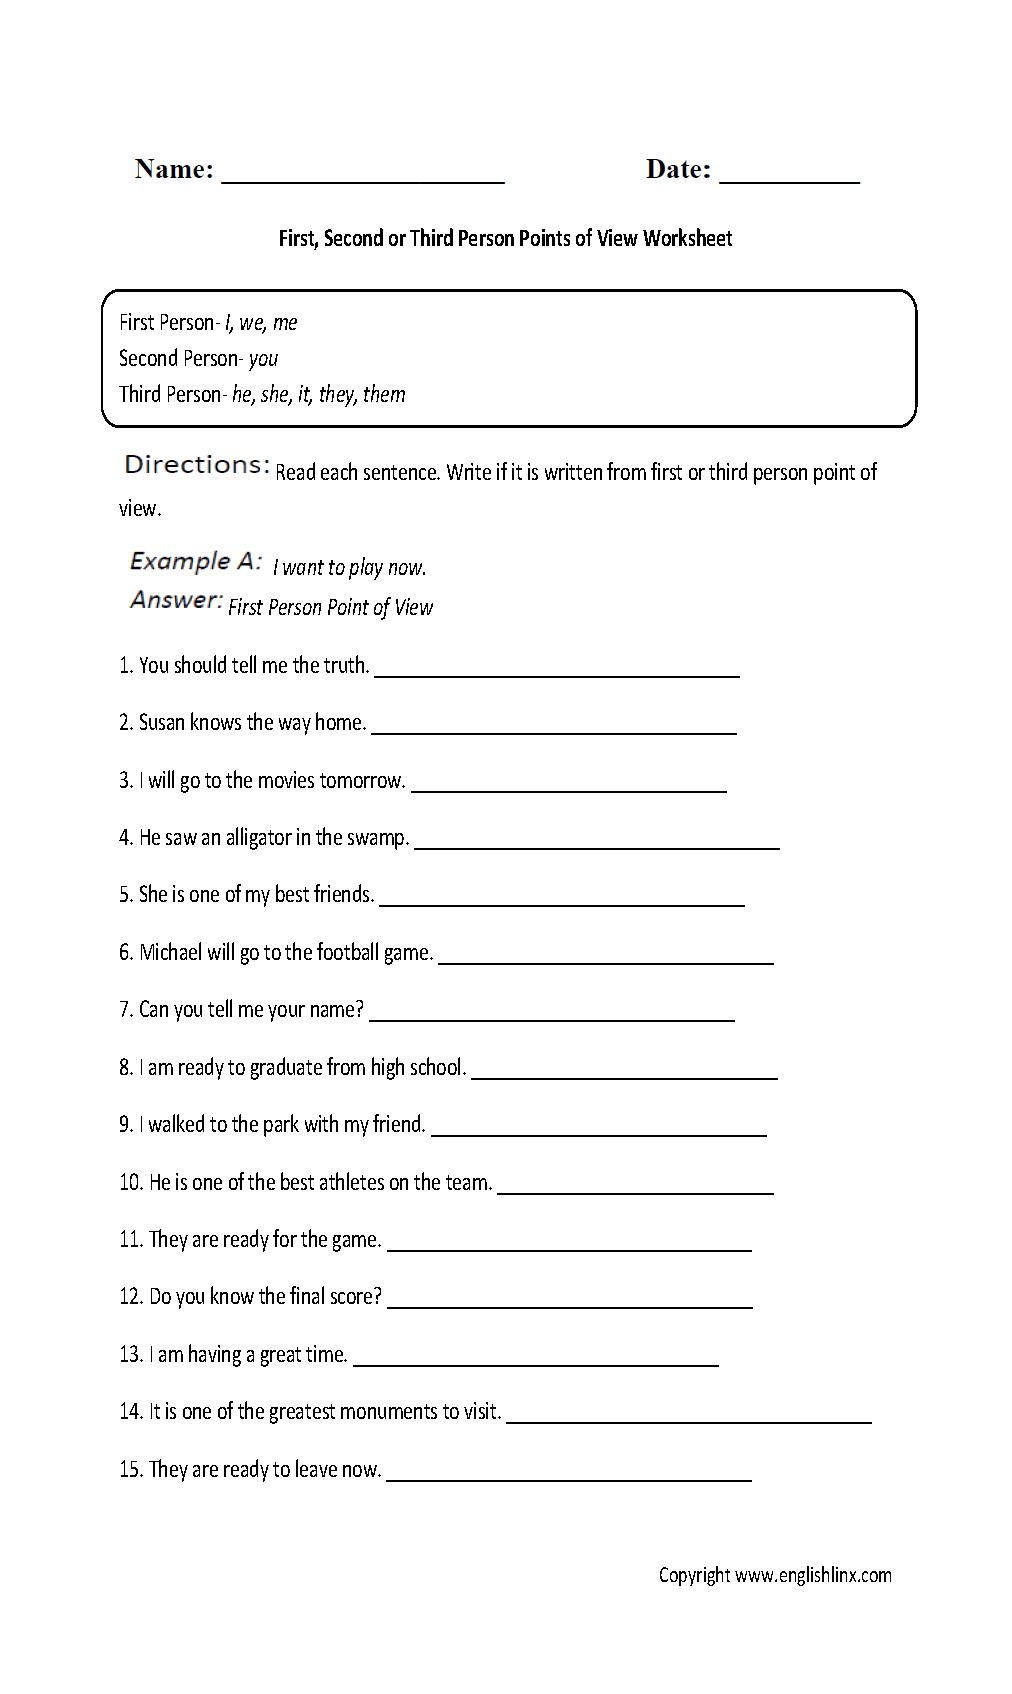 Weirdmailus  Pleasing Englishlinxcom  Point Of View Worksheets With Fair Point Of View Worksheet With Delightful Decimal Divided By Whole Number Worksheet Also Worksheet For Kids Maths In Addition Fifth Grade Math Problems Worksheets And Clock Template Worksheet As Well As Free Household Budget Worksheet Printable Additionally Worksheet On Conjunctions From Englishlinxcom With Weirdmailus  Fair Englishlinxcom  Point Of View Worksheets With Delightful Point Of View Worksheet And Pleasing Decimal Divided By Whole Number Worksheet Also Worksheet For Kids Maths In Addition Fifth Grade Math Problems Worksheets From Englishlinxcom